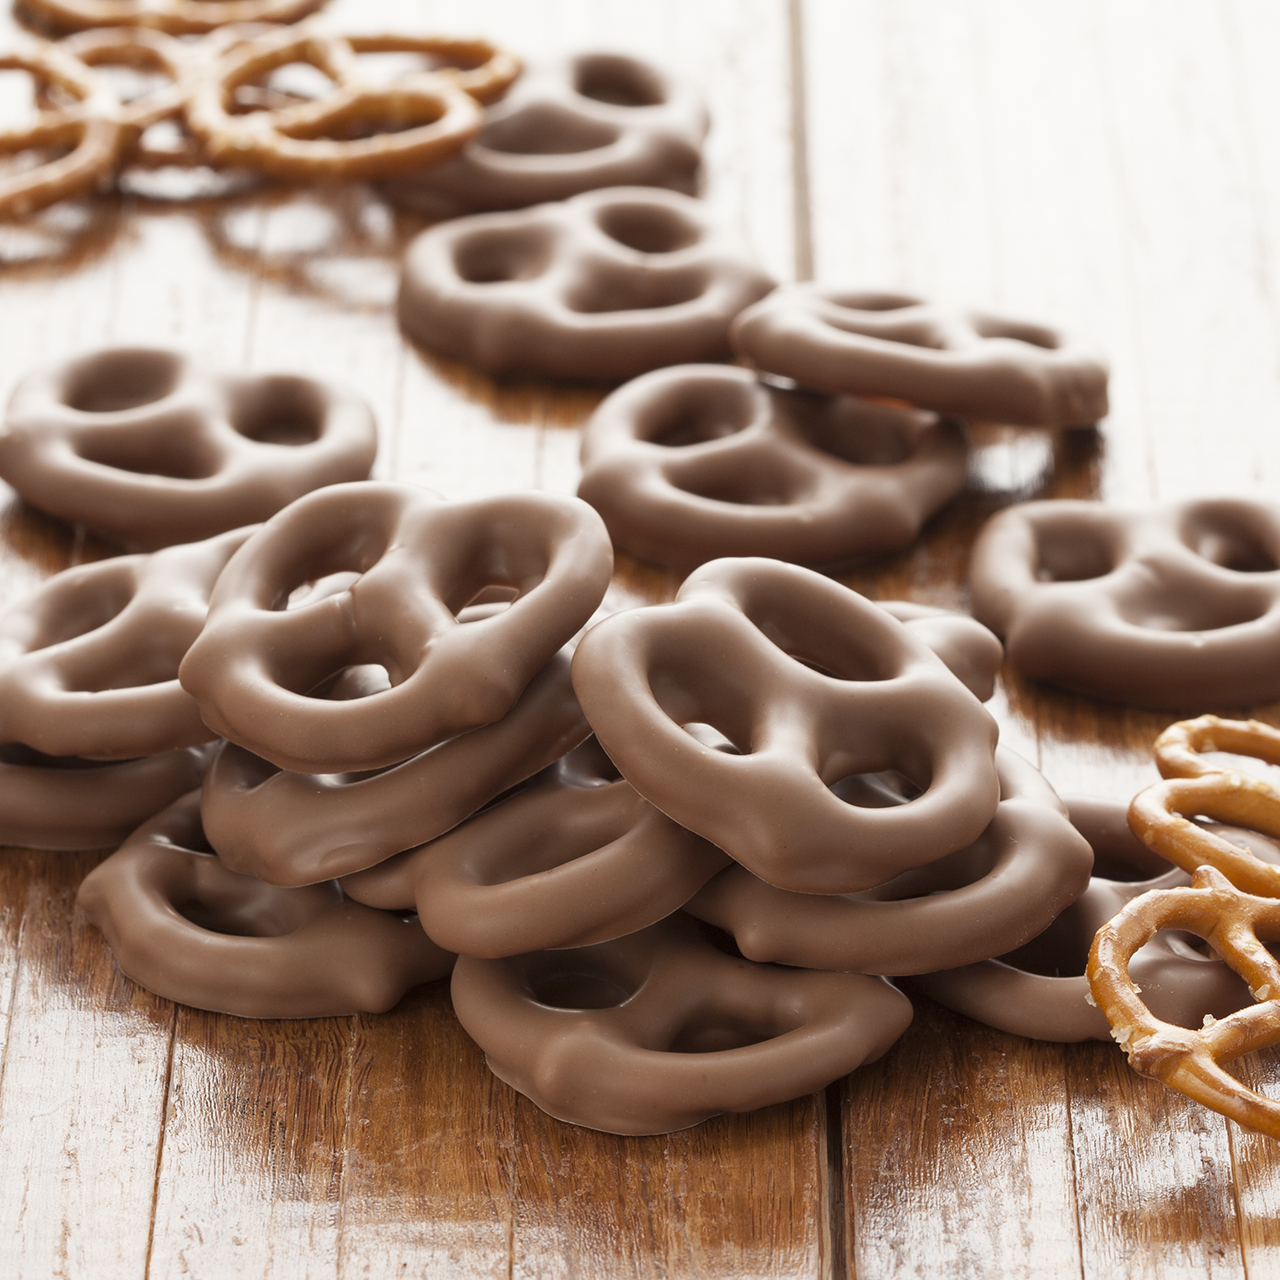 Chocolate-covered Pretzel Twists - 5 oz